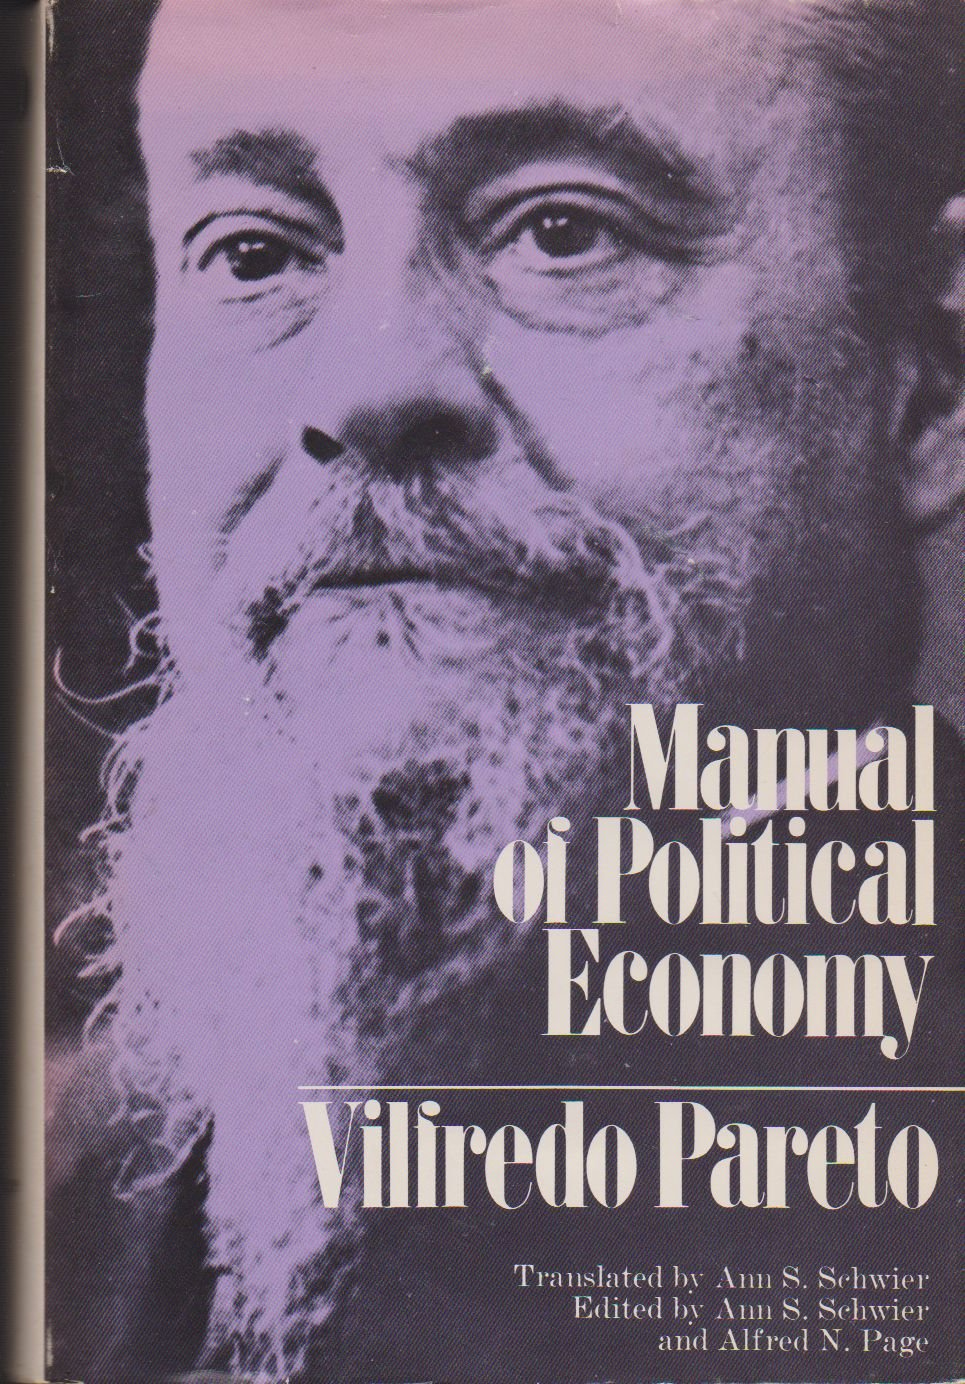 pareto manual of political economy